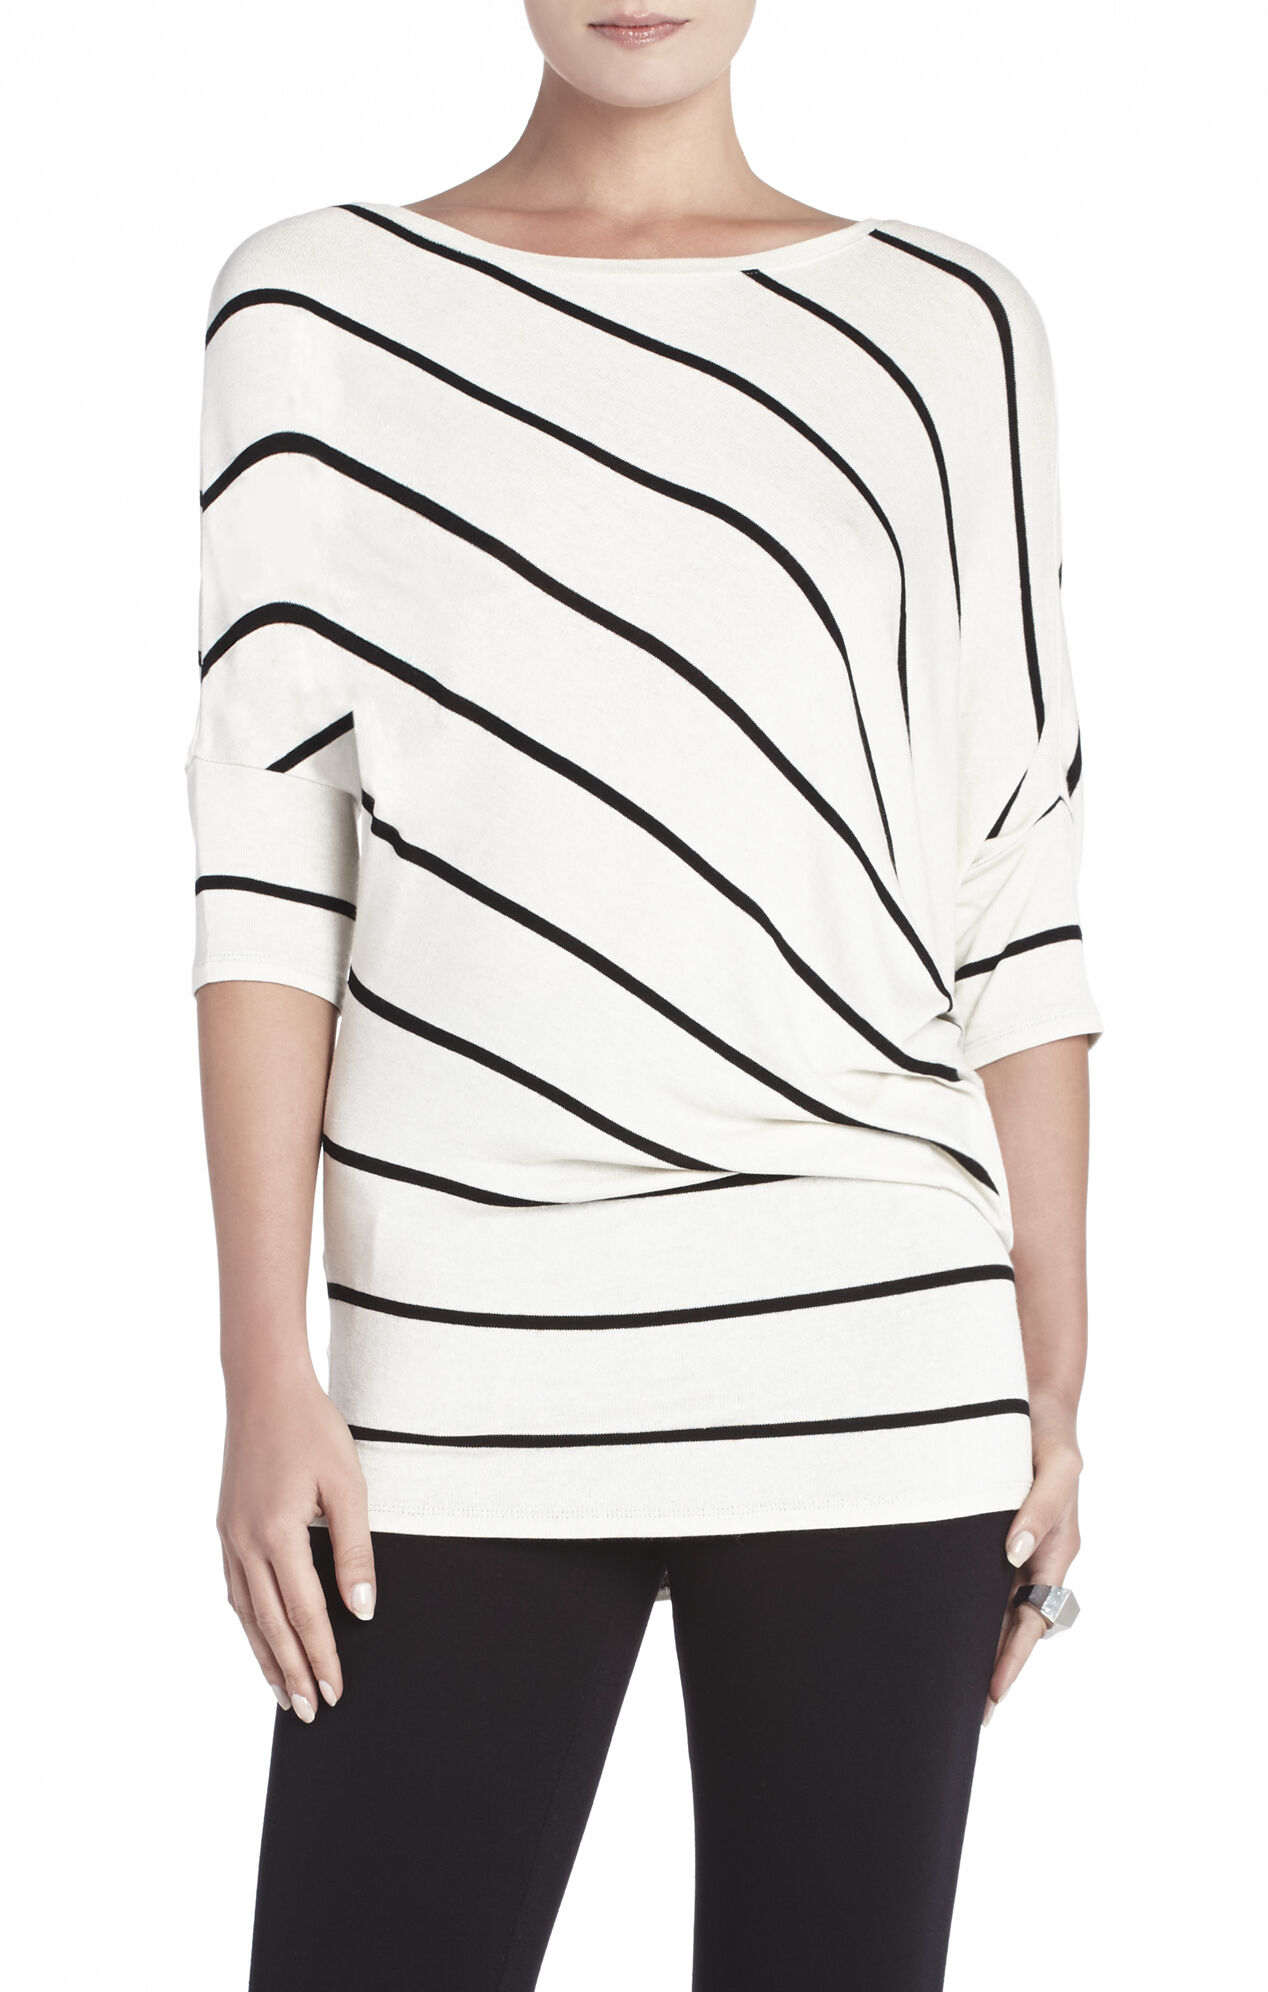 Jonesy Boatneck Top